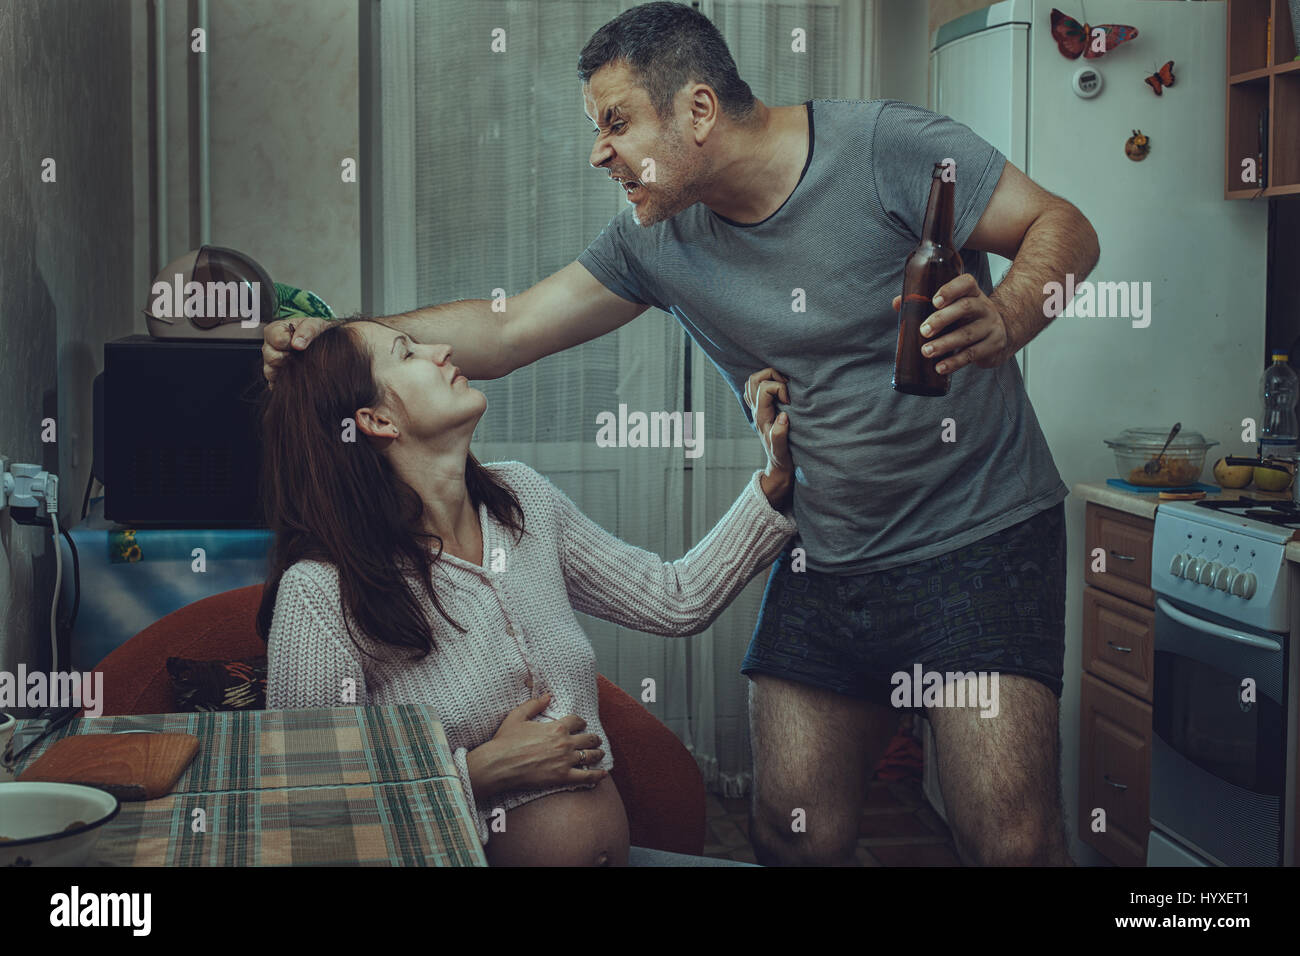 Alcoholic husband beats his wife, at home in the kitchen. Social problems of the family. - Stock Image